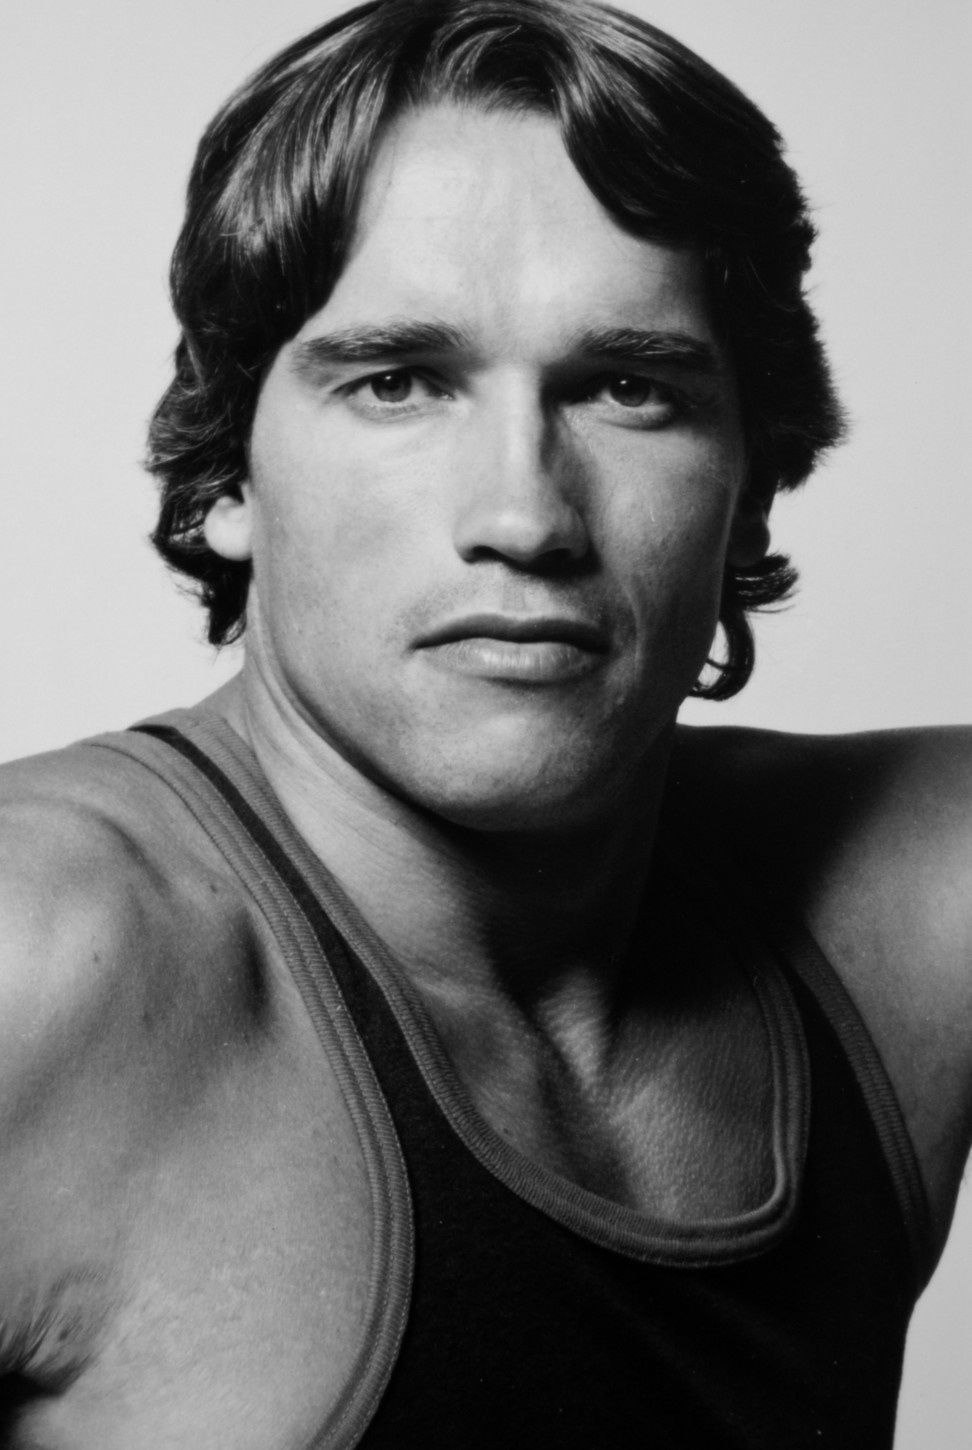 Arnold Schwarzenegger in one of his first films